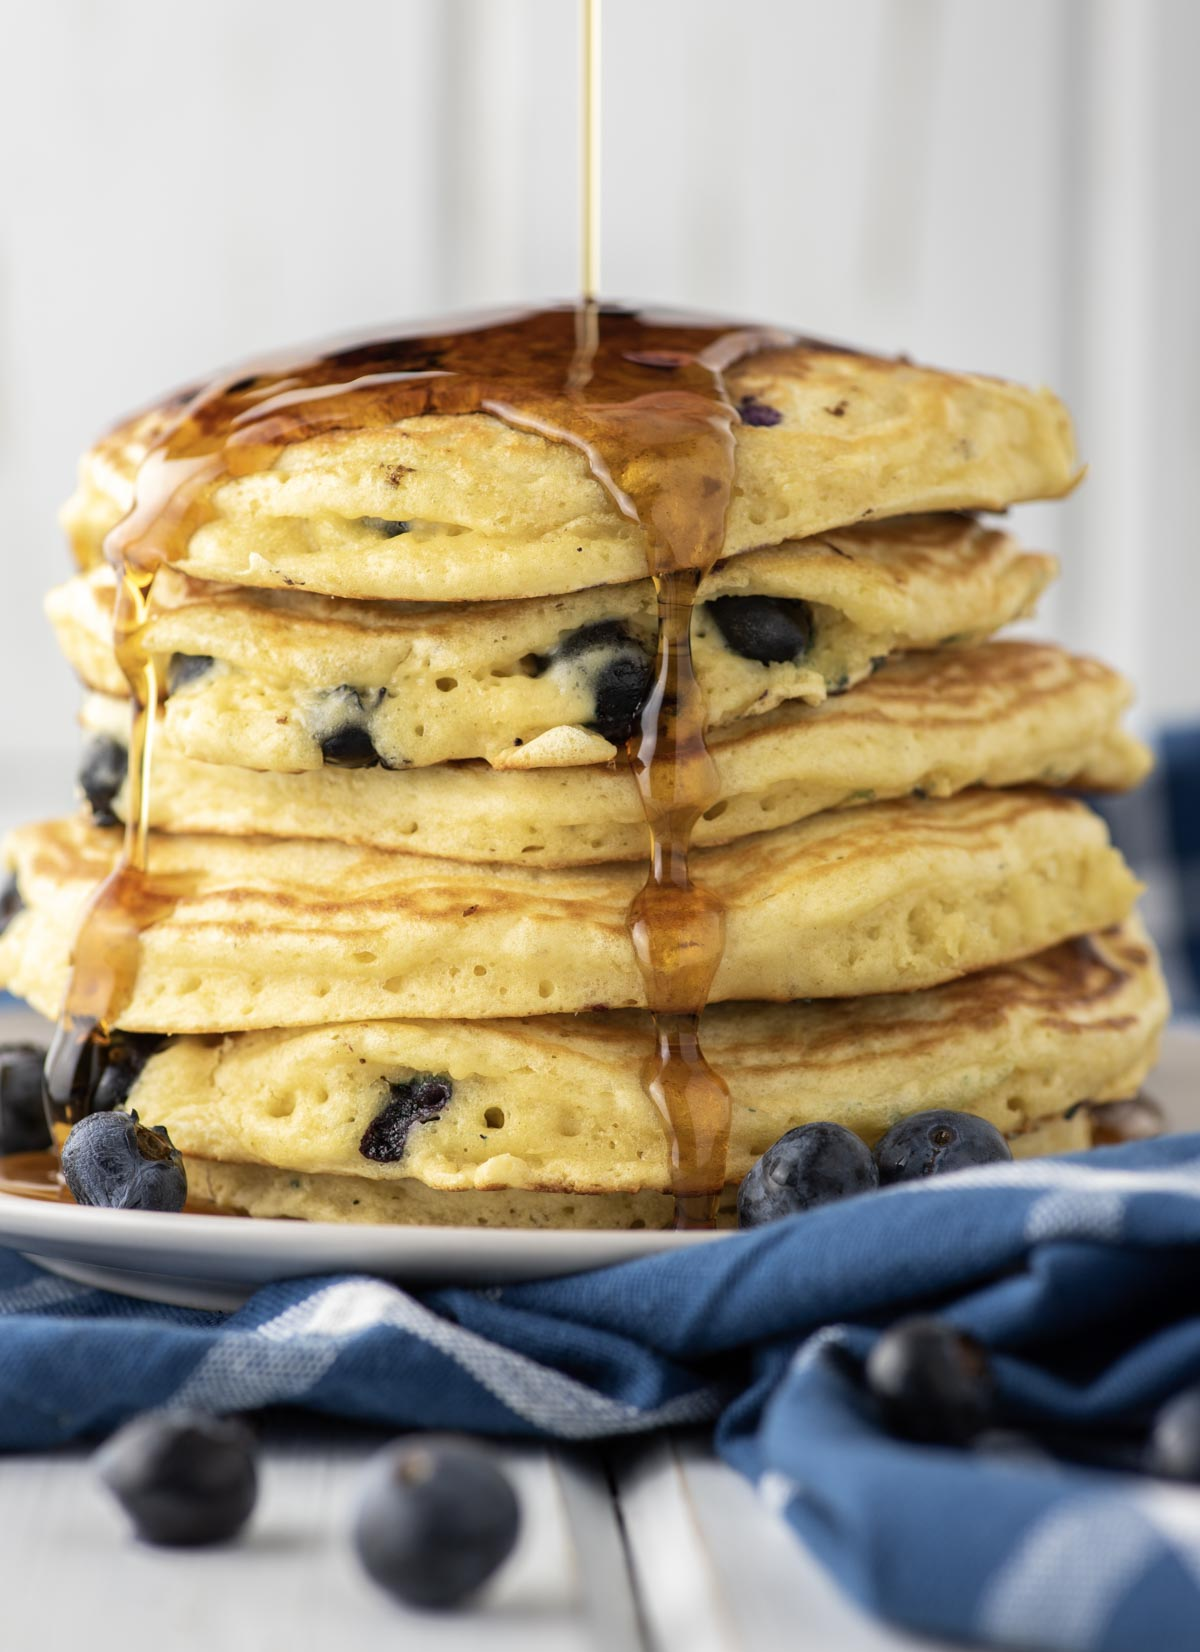 maple syrup being drizzled over stacked blueberry pancakes